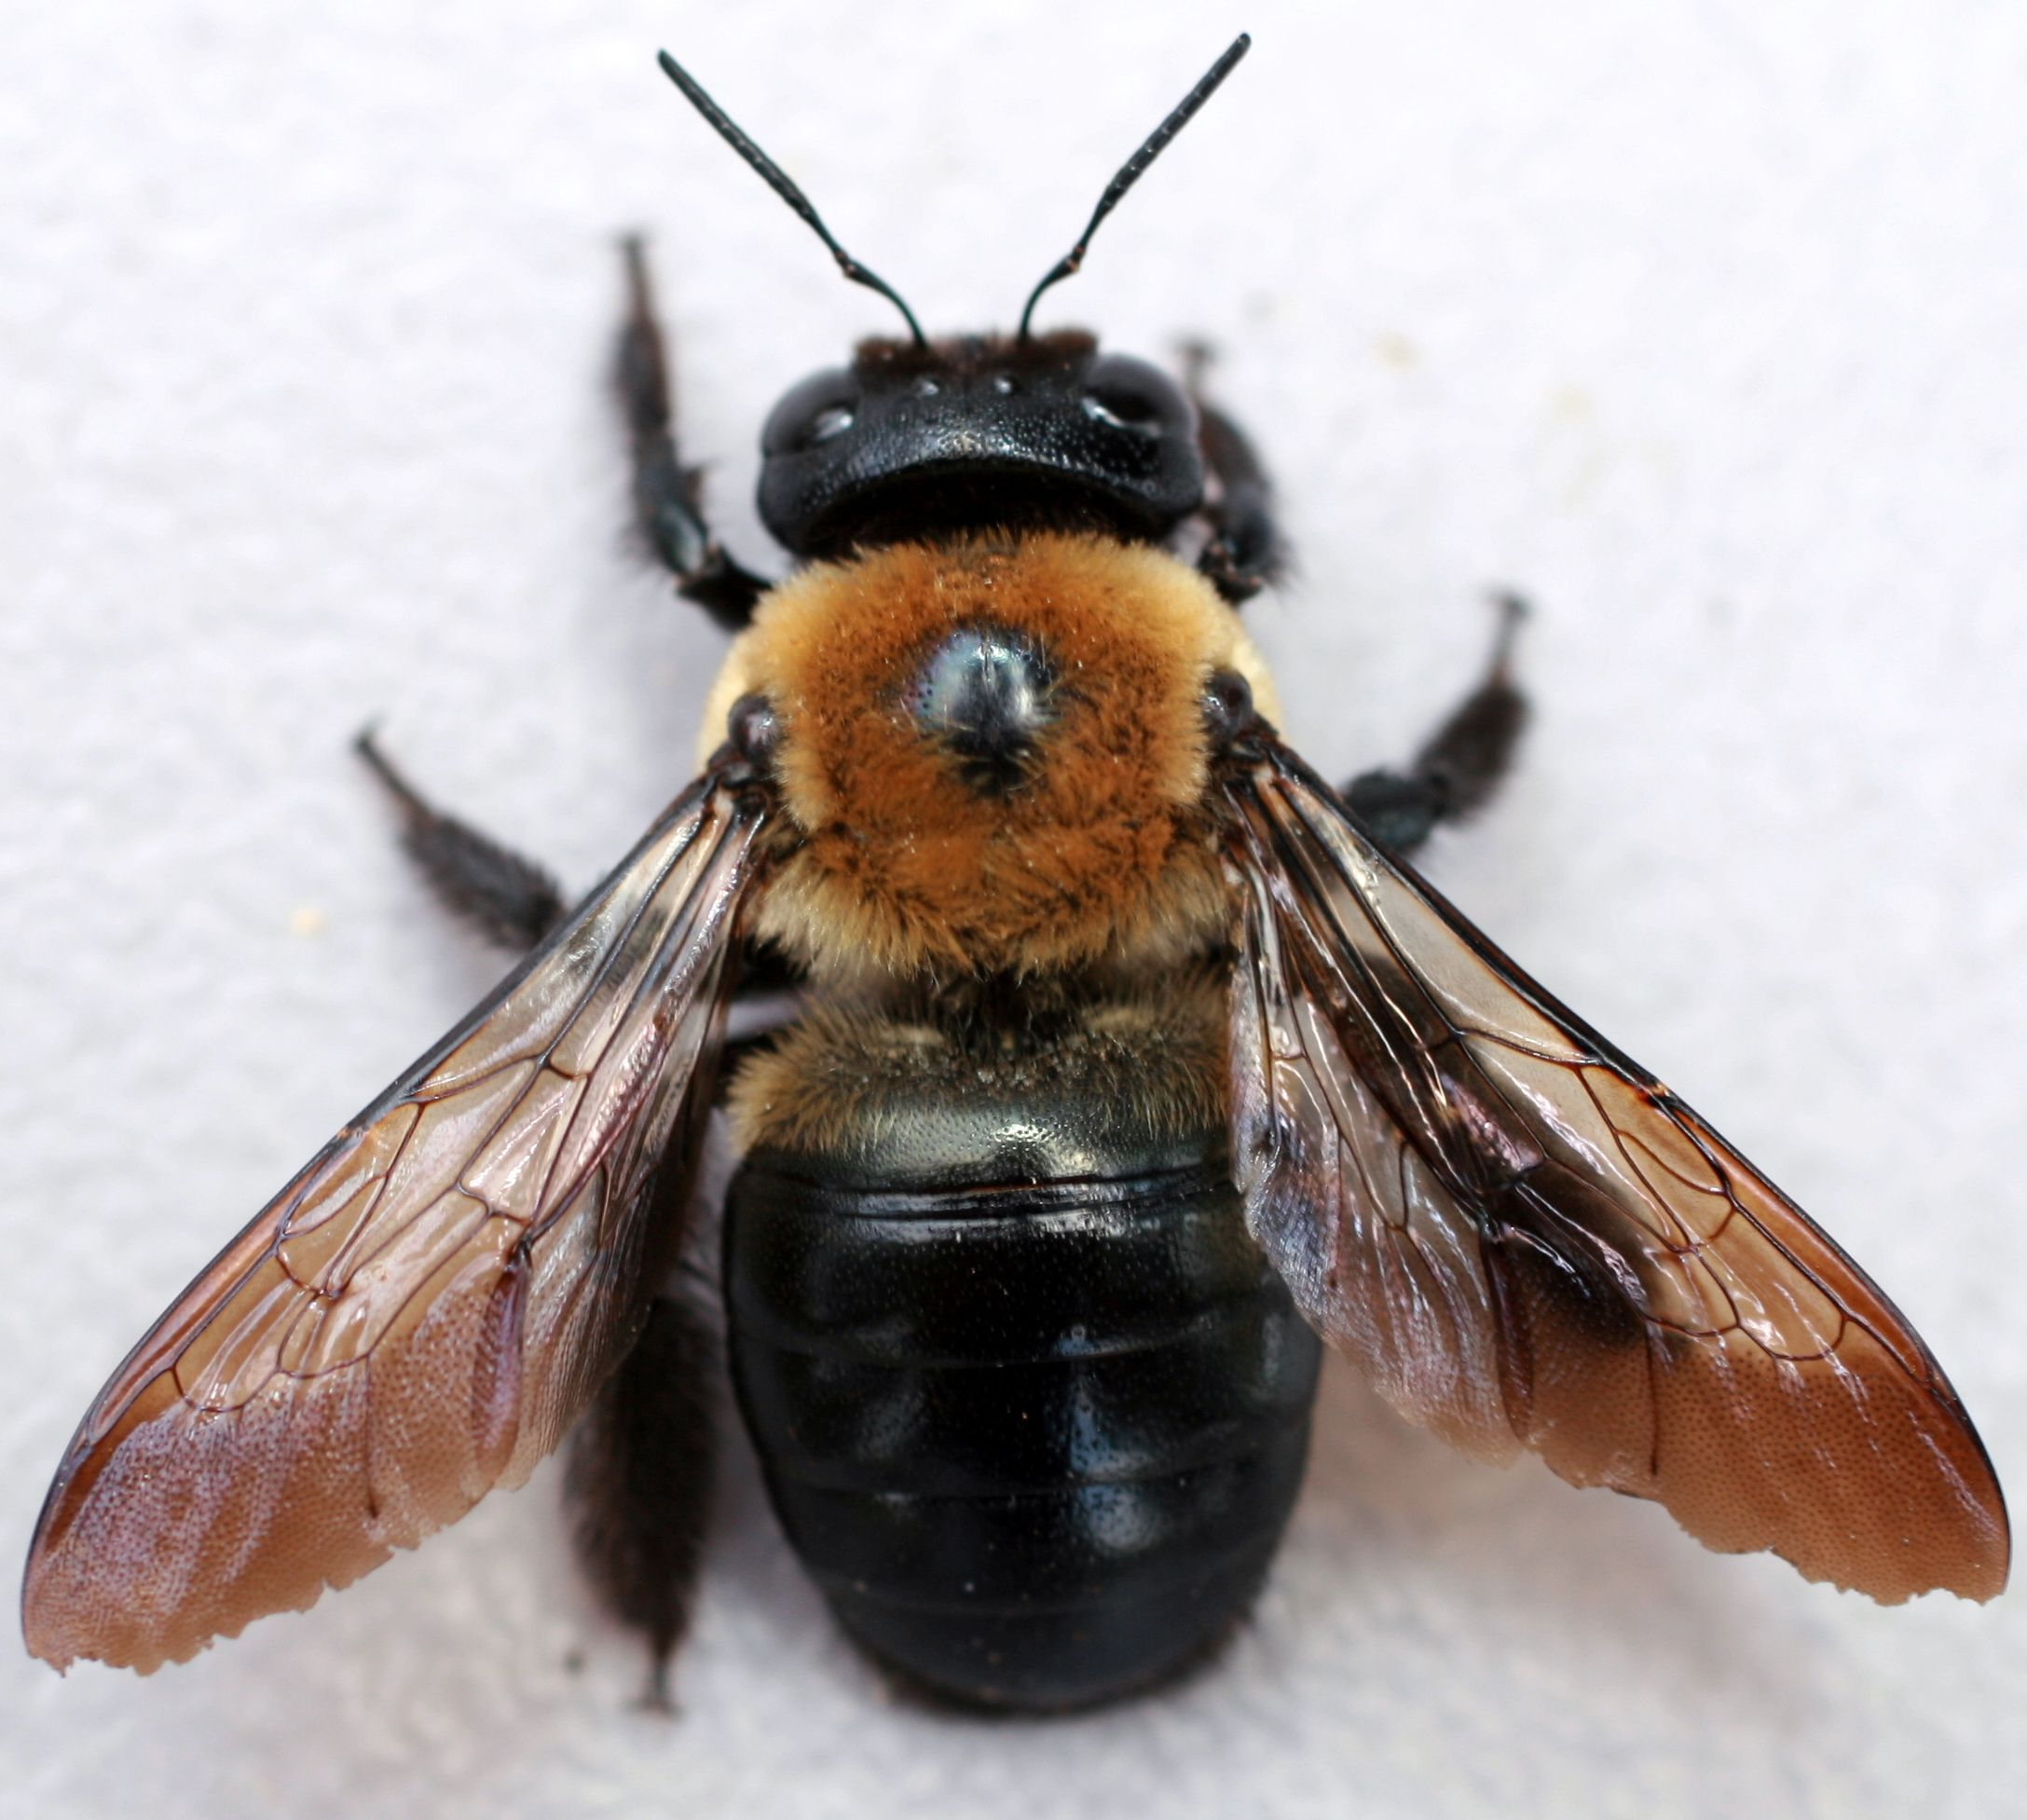 Zombie bee parasite that takes over the body of the